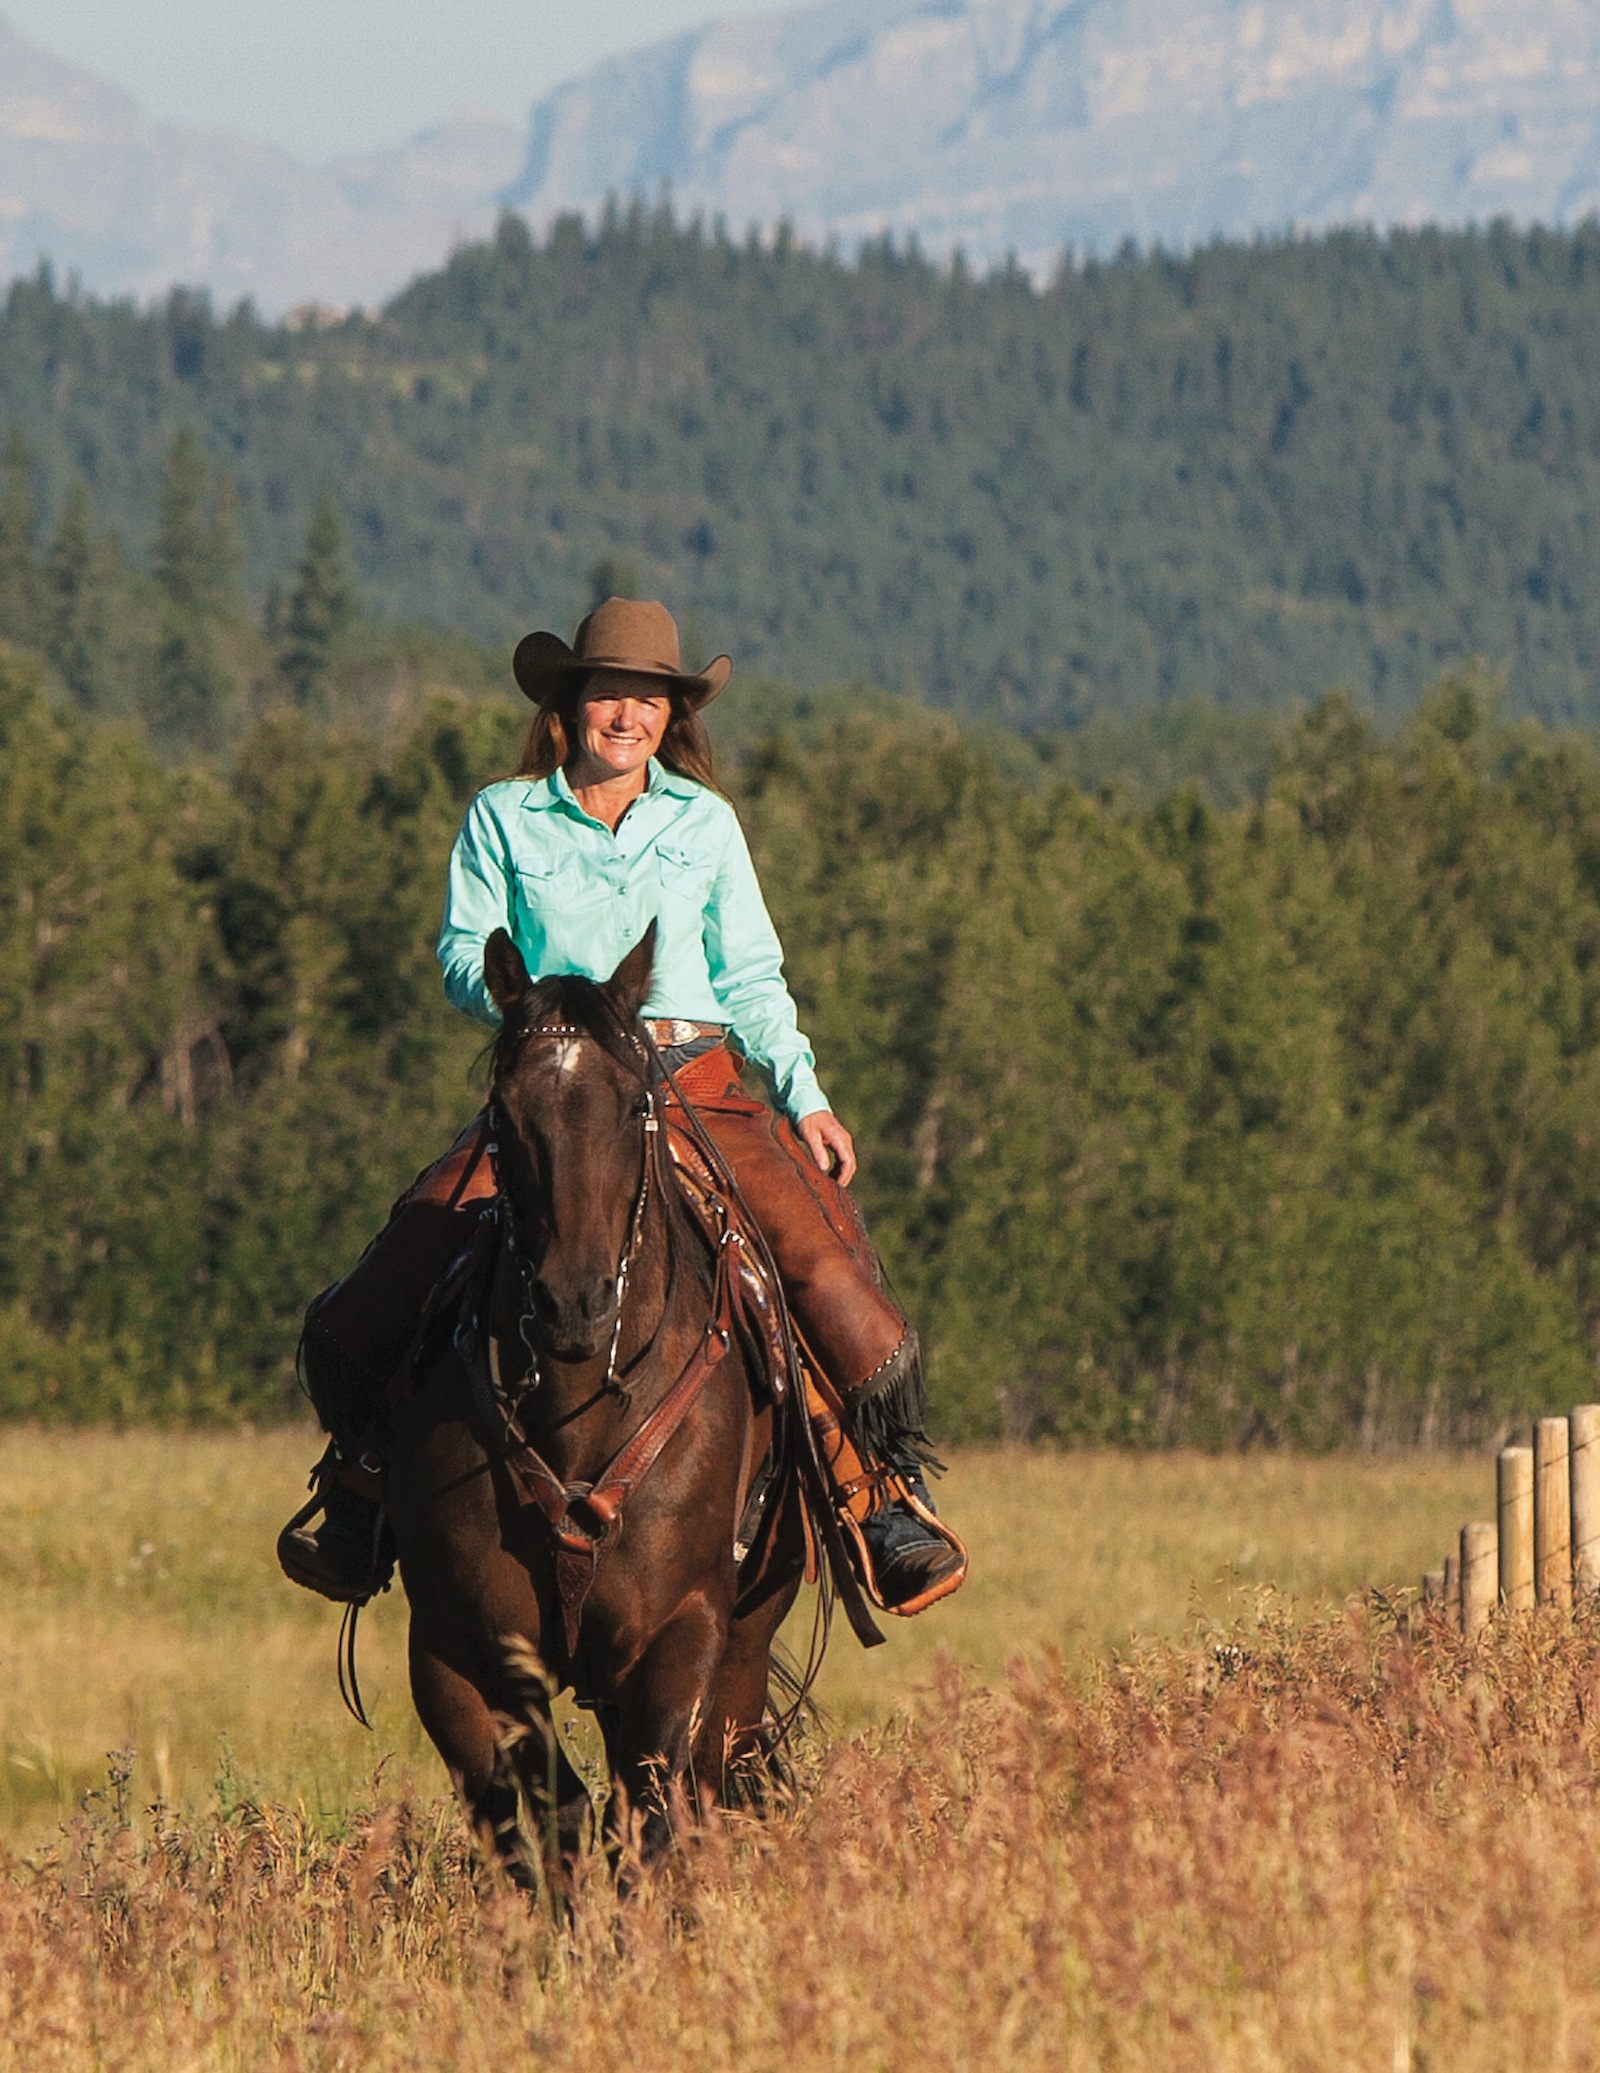 Mary Beth Sibbald riding horse through Alberta pasture